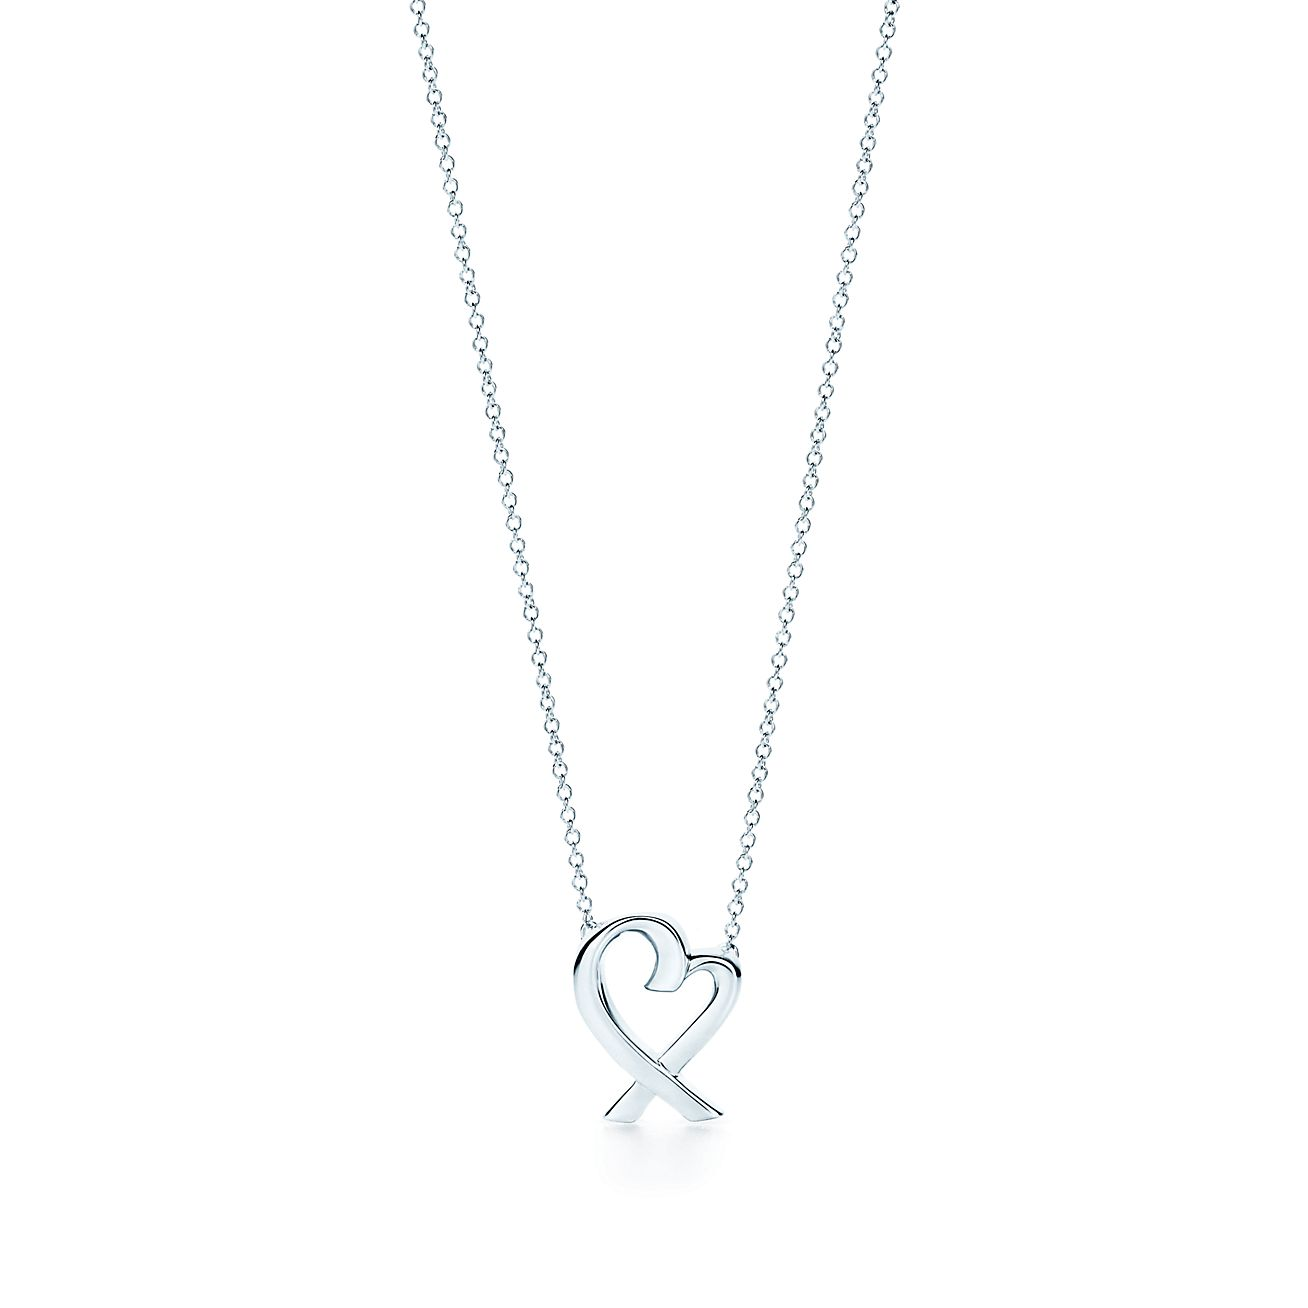 Paloma picasso loving heart pendant in sterling silver small paloma picassoloving heart pendant audiocablefo